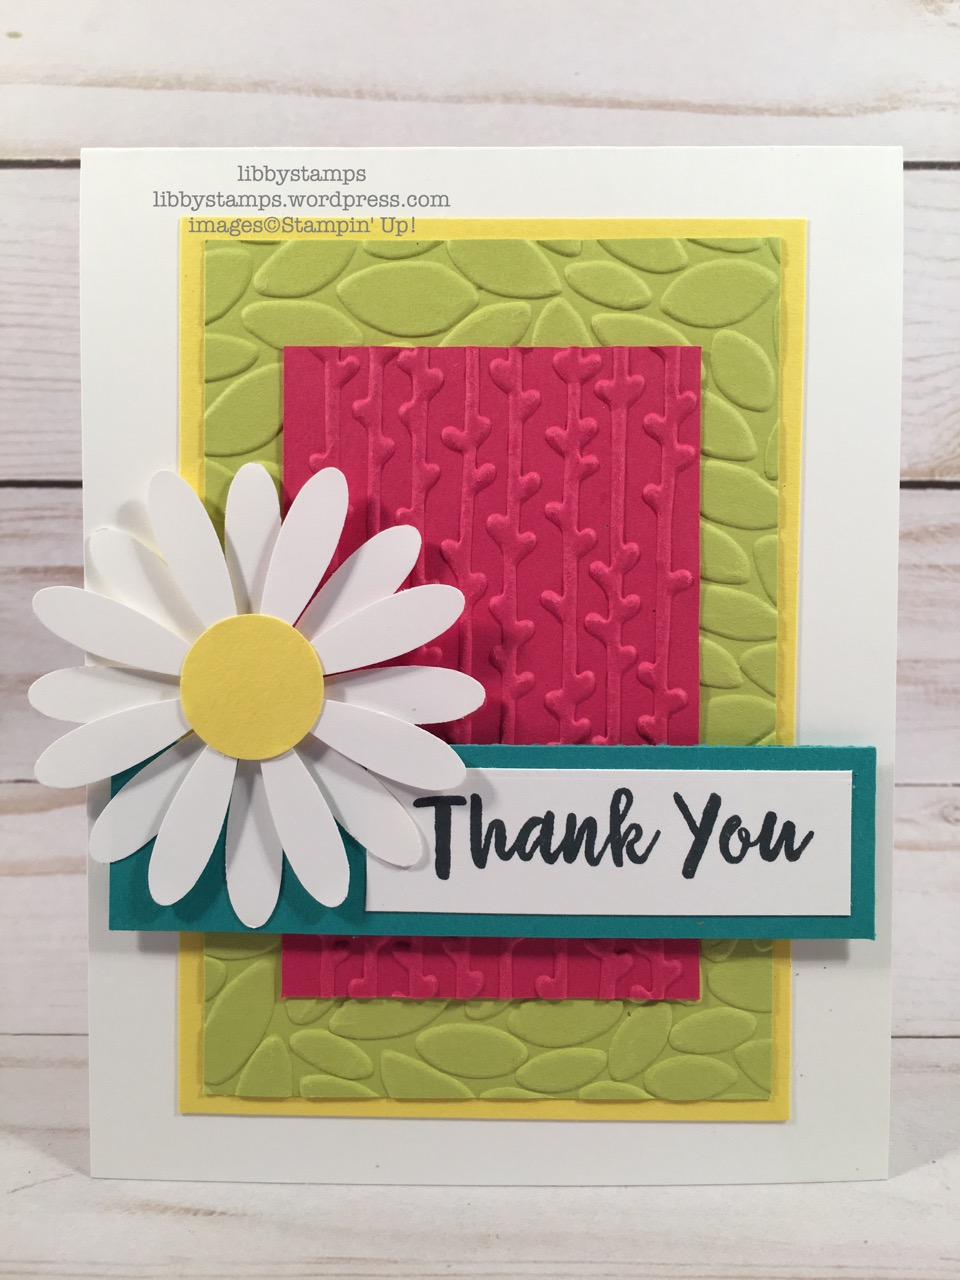 libbystamps, stampin up, Abstract Impressions, Petal Burst EF, Daisy Punch, Petal Pair Embossing Folder, Petal Burst Embossing Folder, CCMC